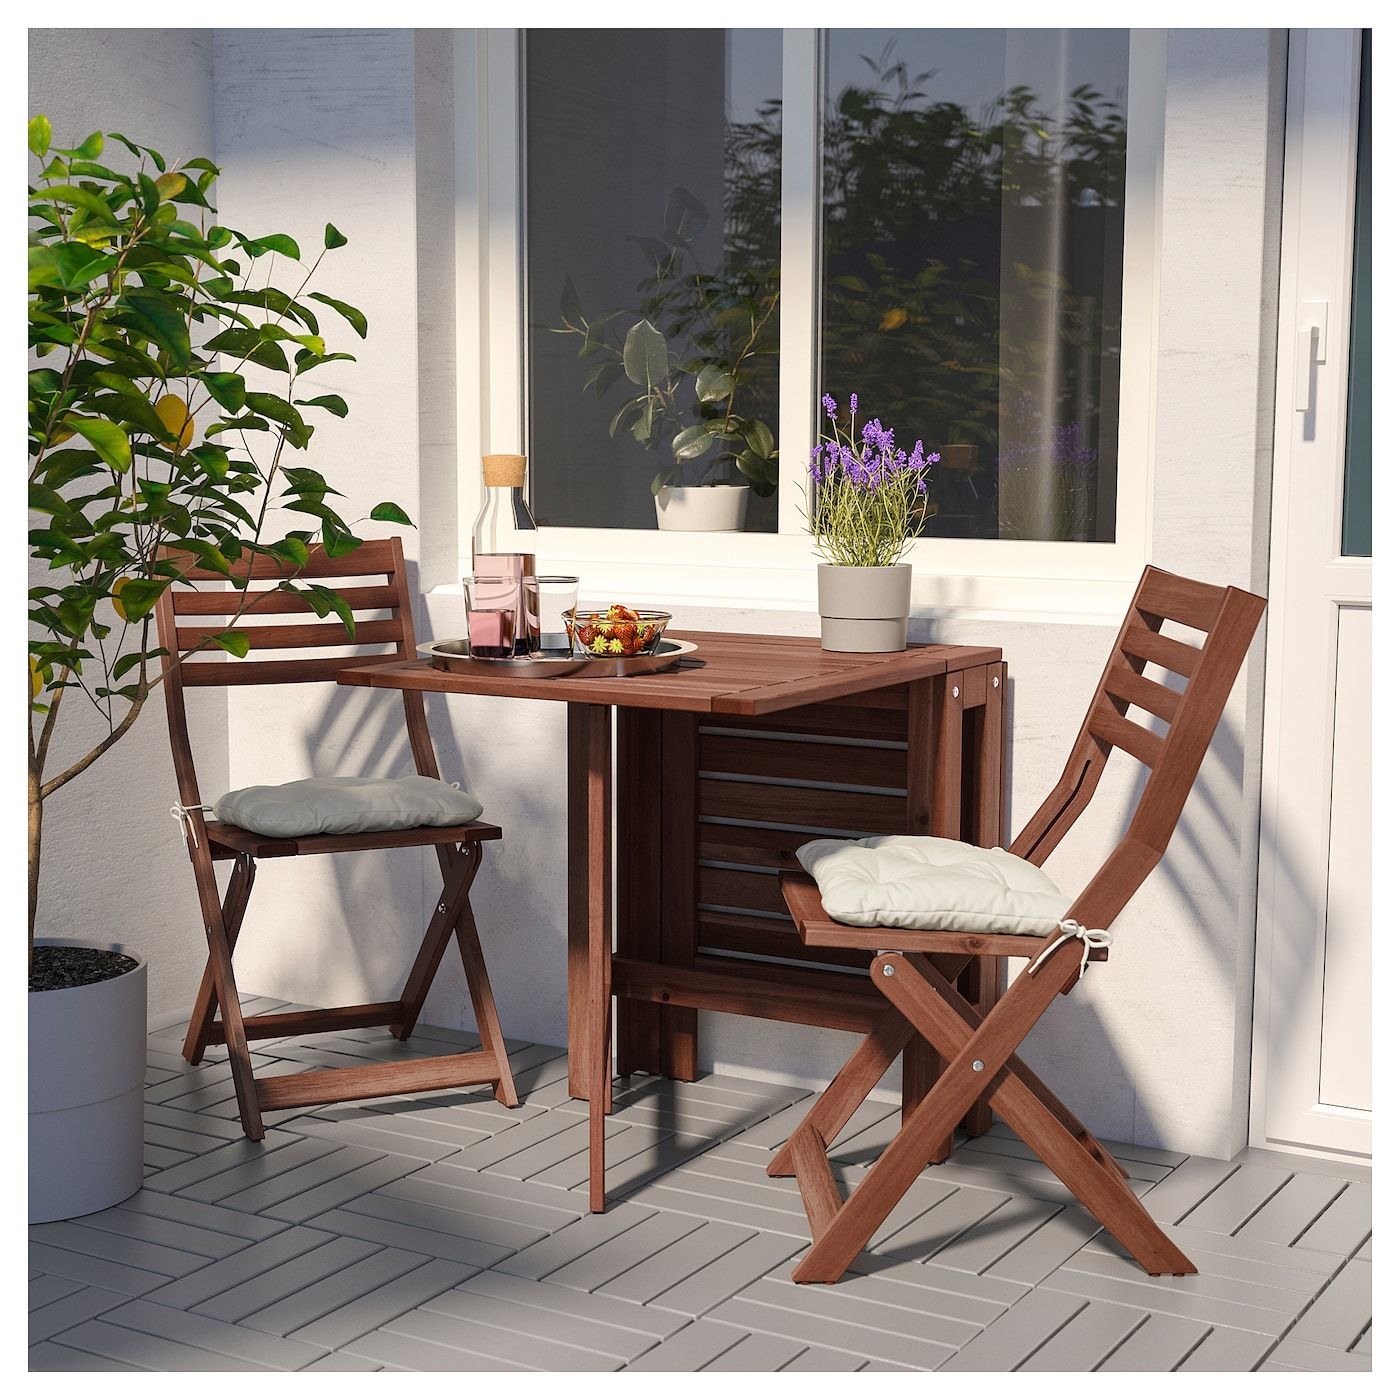 PPLARÖ Gateleg table, outdoor  IKEA is part of Wooden outdoor furniture - IKEA  ÄPPLARÖ, Gateleg table, outdoor, Two folding dropleaves allow you to adjust the table size according to your needs For added durability and so you can enjoy